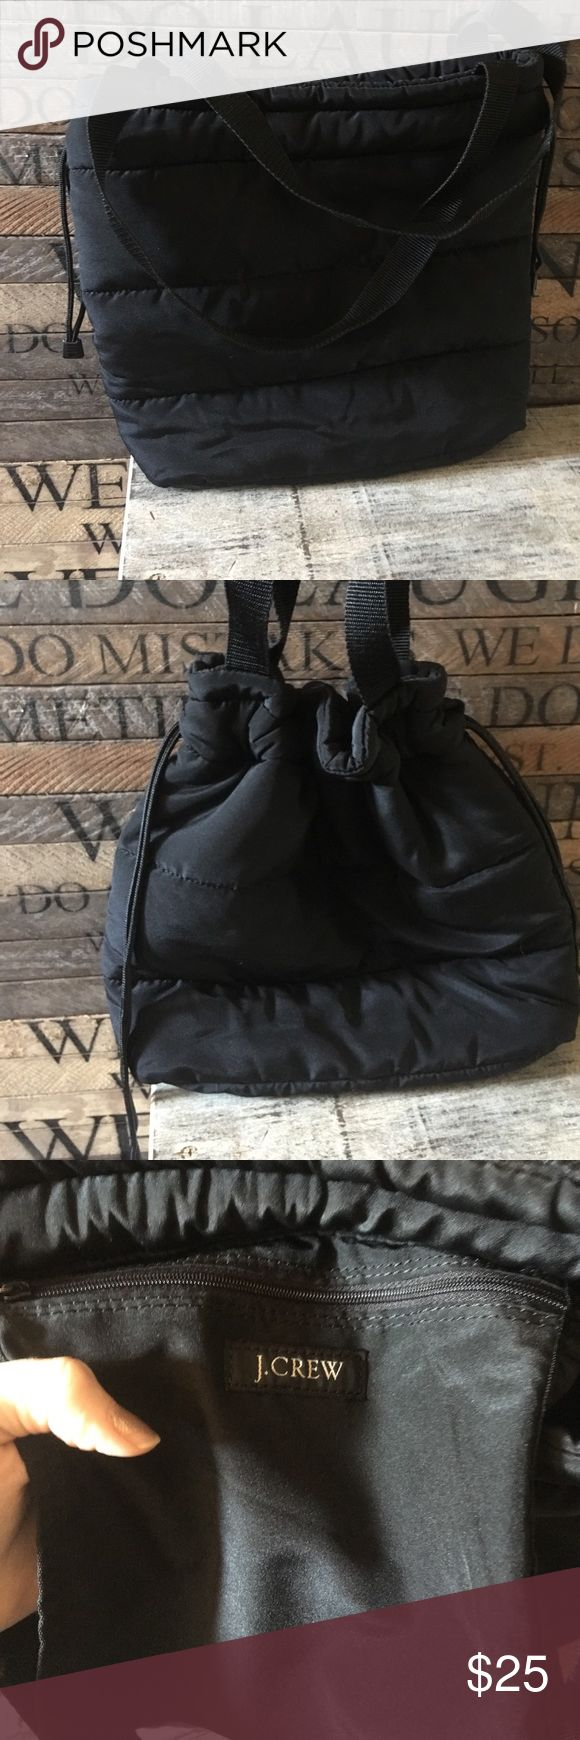 J Crew Puffer tote bag purse black fleece lined This is a like new tote purse by j crew. It is black in color and has draw string to cinch closed if desired. Has one pocket that zips on the inside. The inside is lined with fleece! Smoke free J. Crew Bags